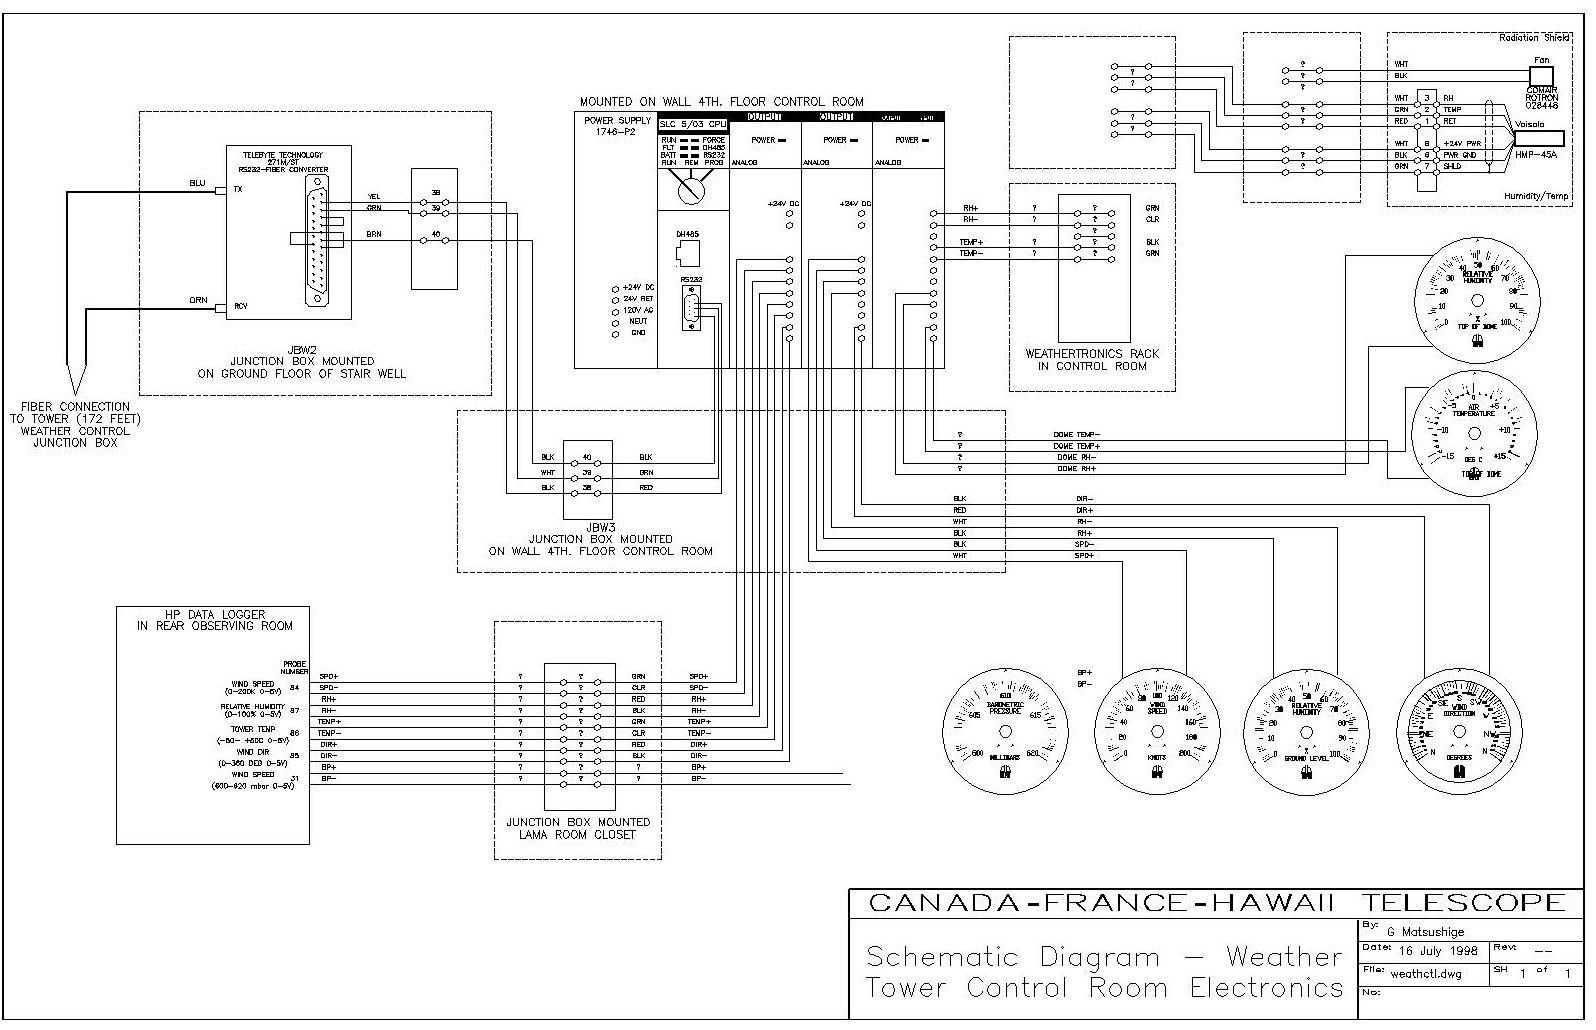 ctl_room_sch?resize\\d665%2C429 allen bradley 855t bpm10 wiring diagram efcaviation com 855e bcb wiring diagram at gsmx.co